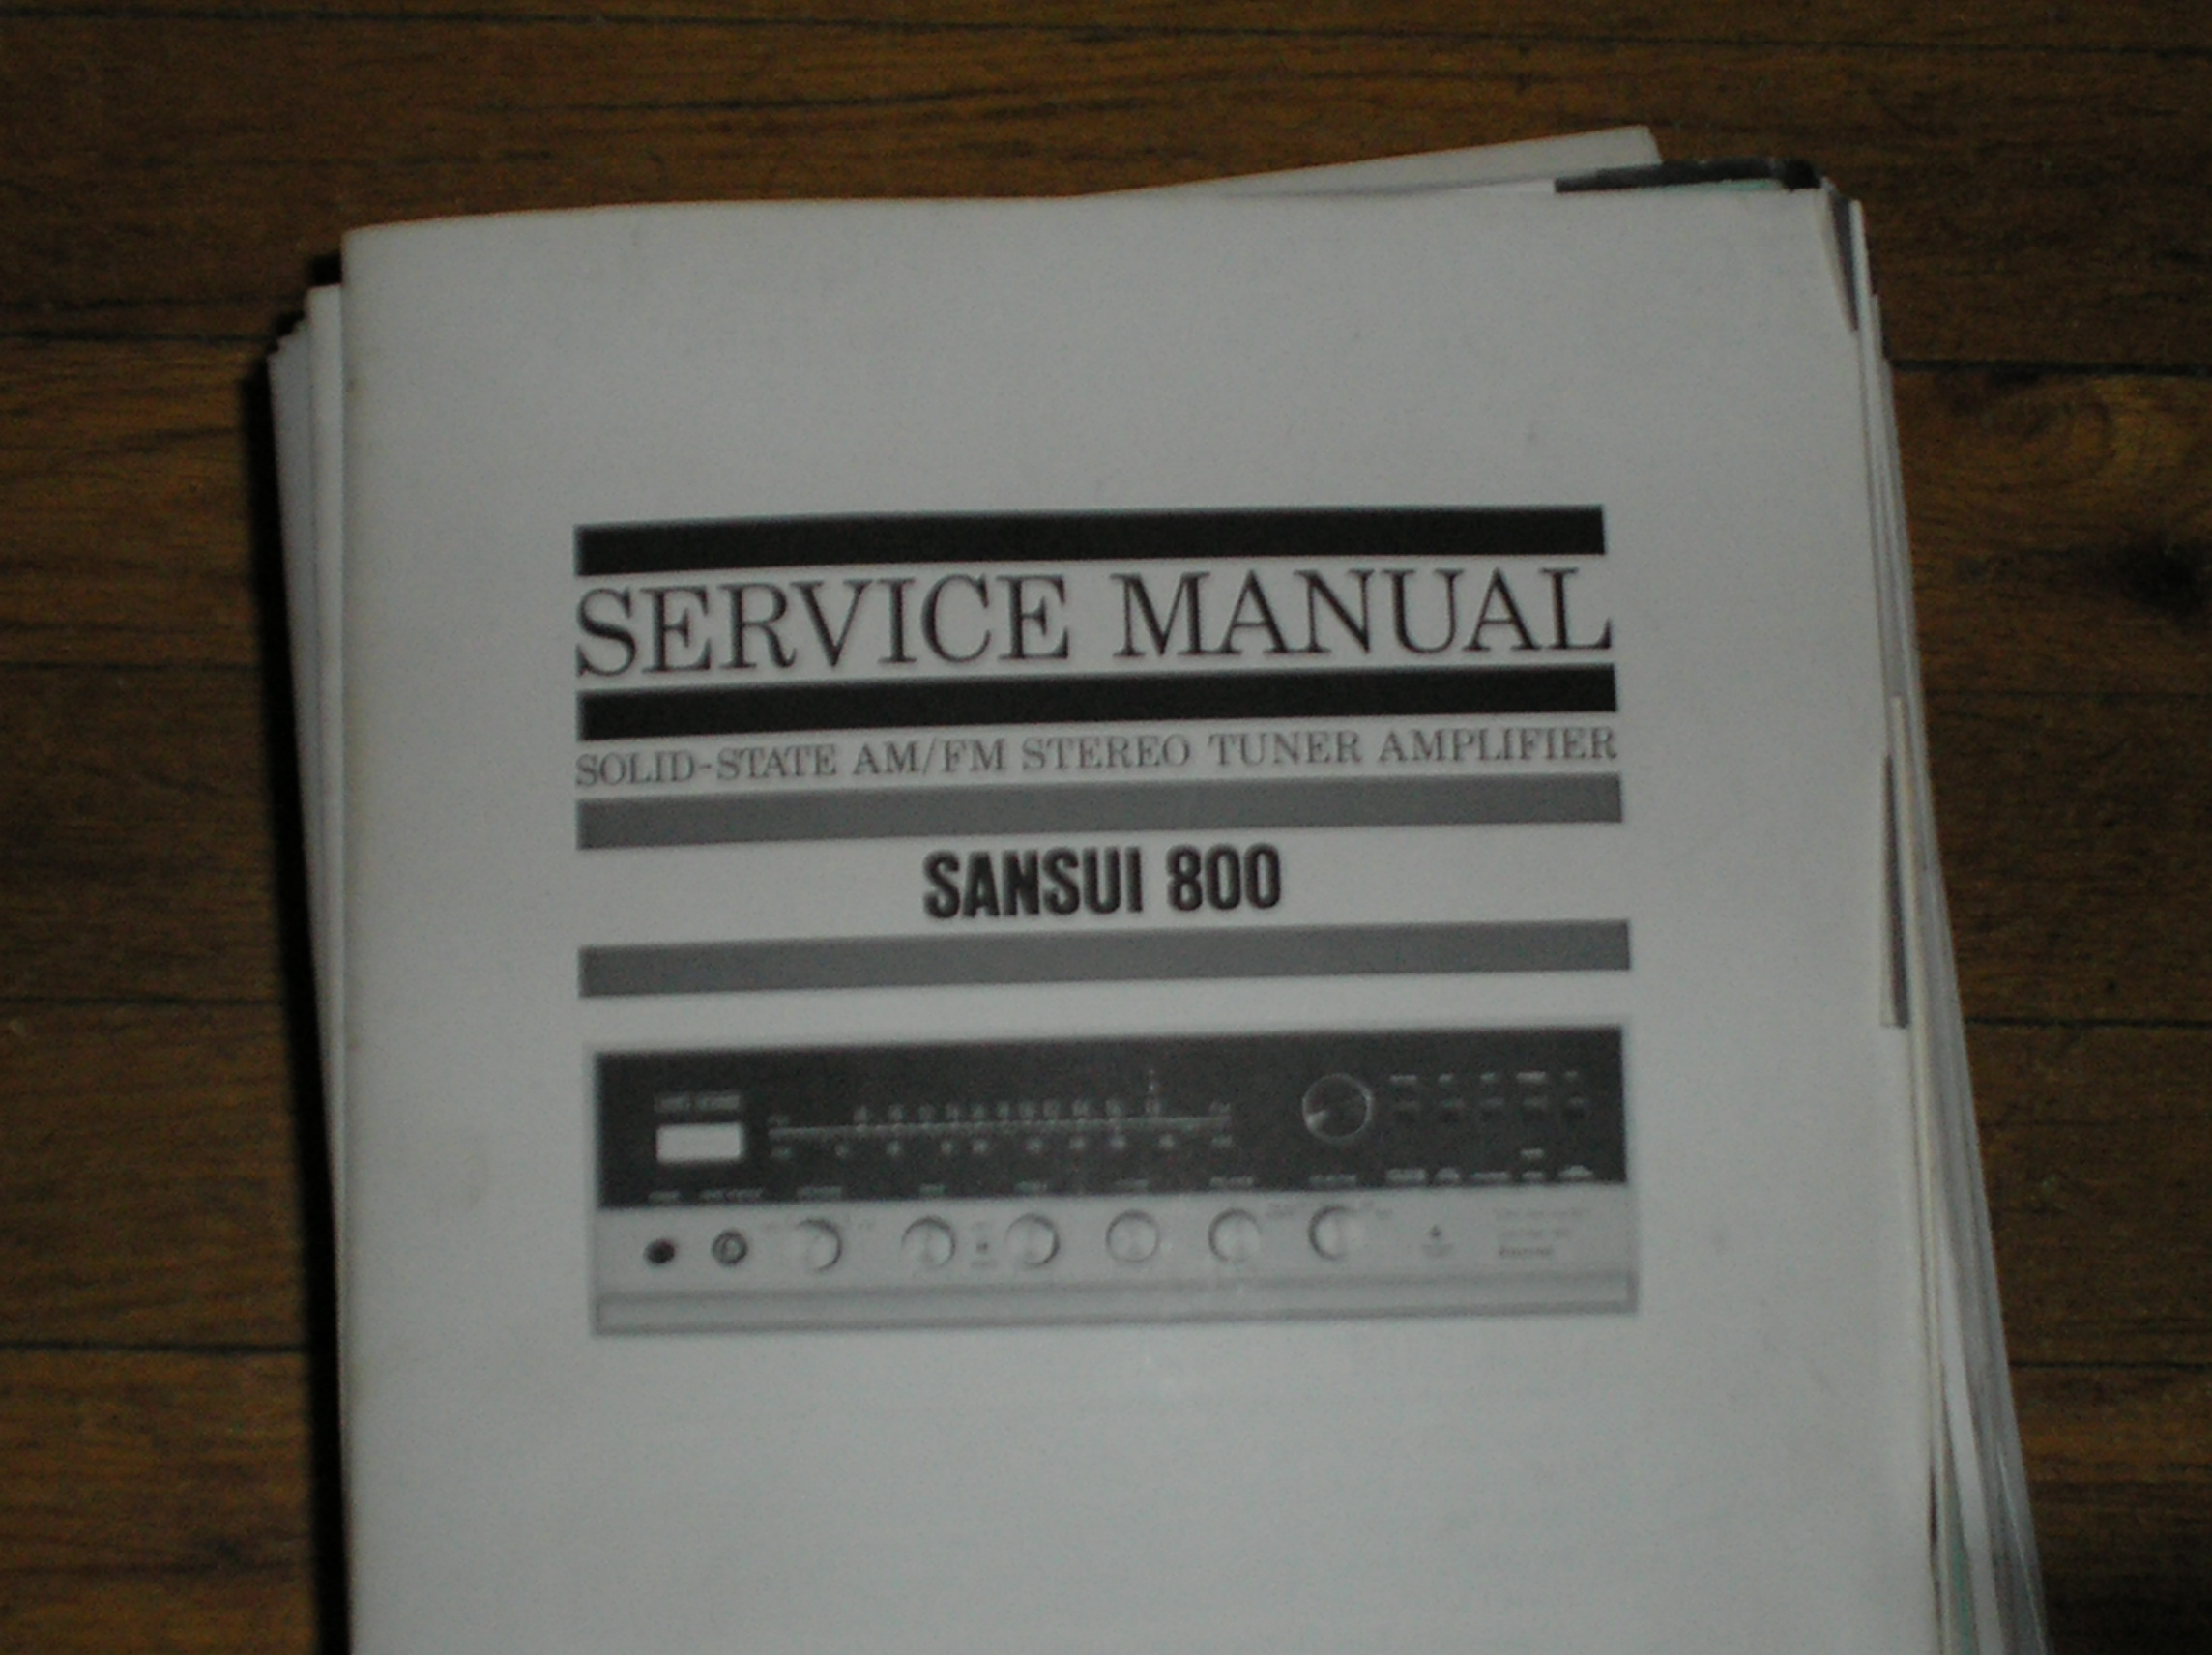 800 AM FM Tuner Amplifier Service Manual